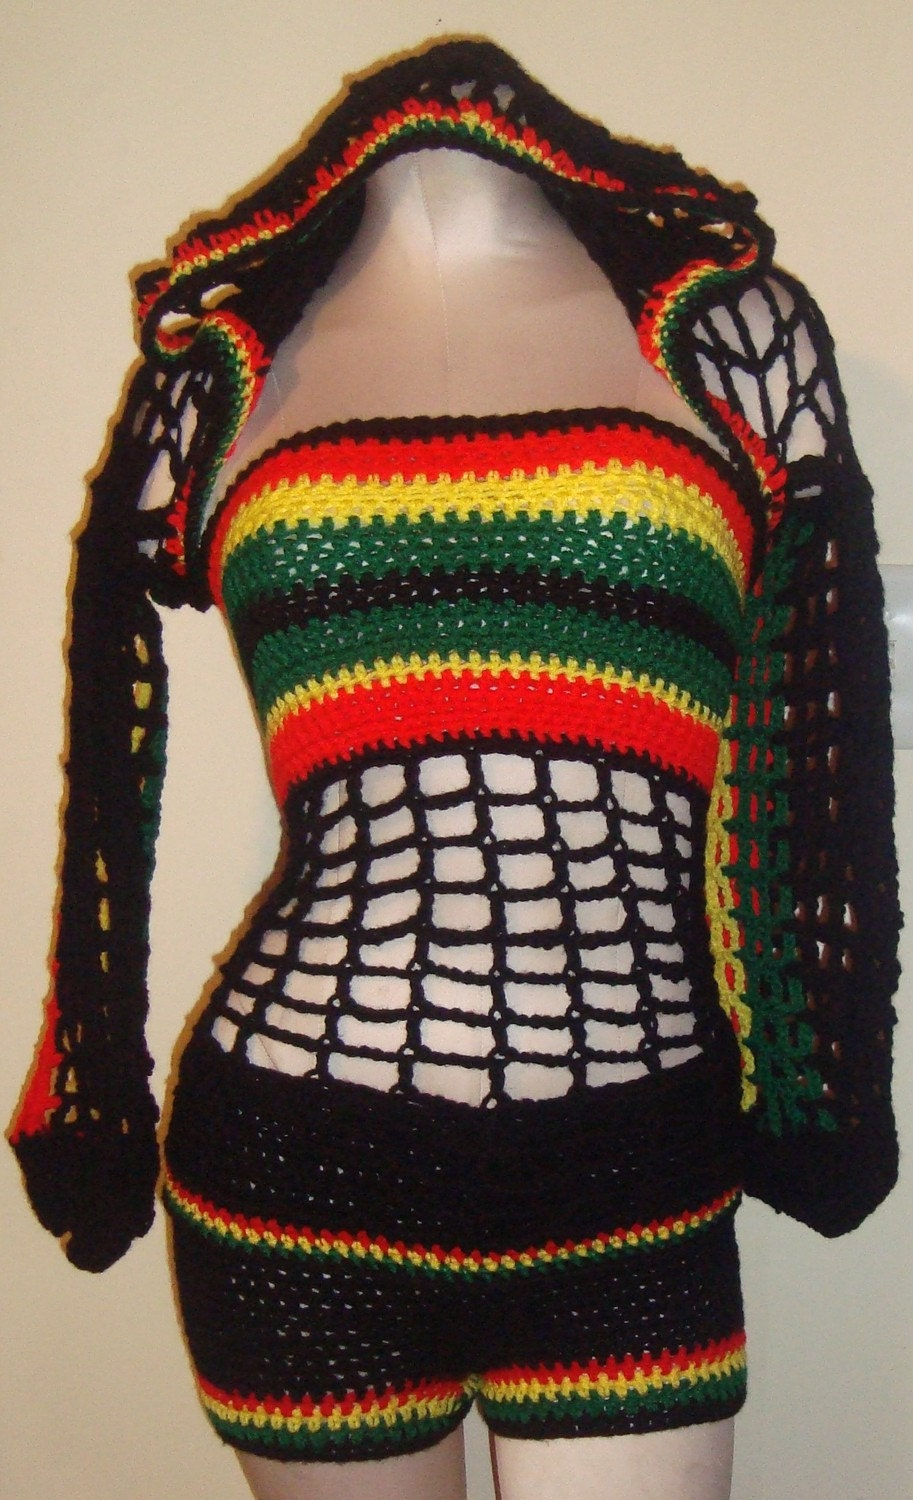 Bob Marley Colors - Hooded Shrug w/ Matching Boy Shorts and Tube Top